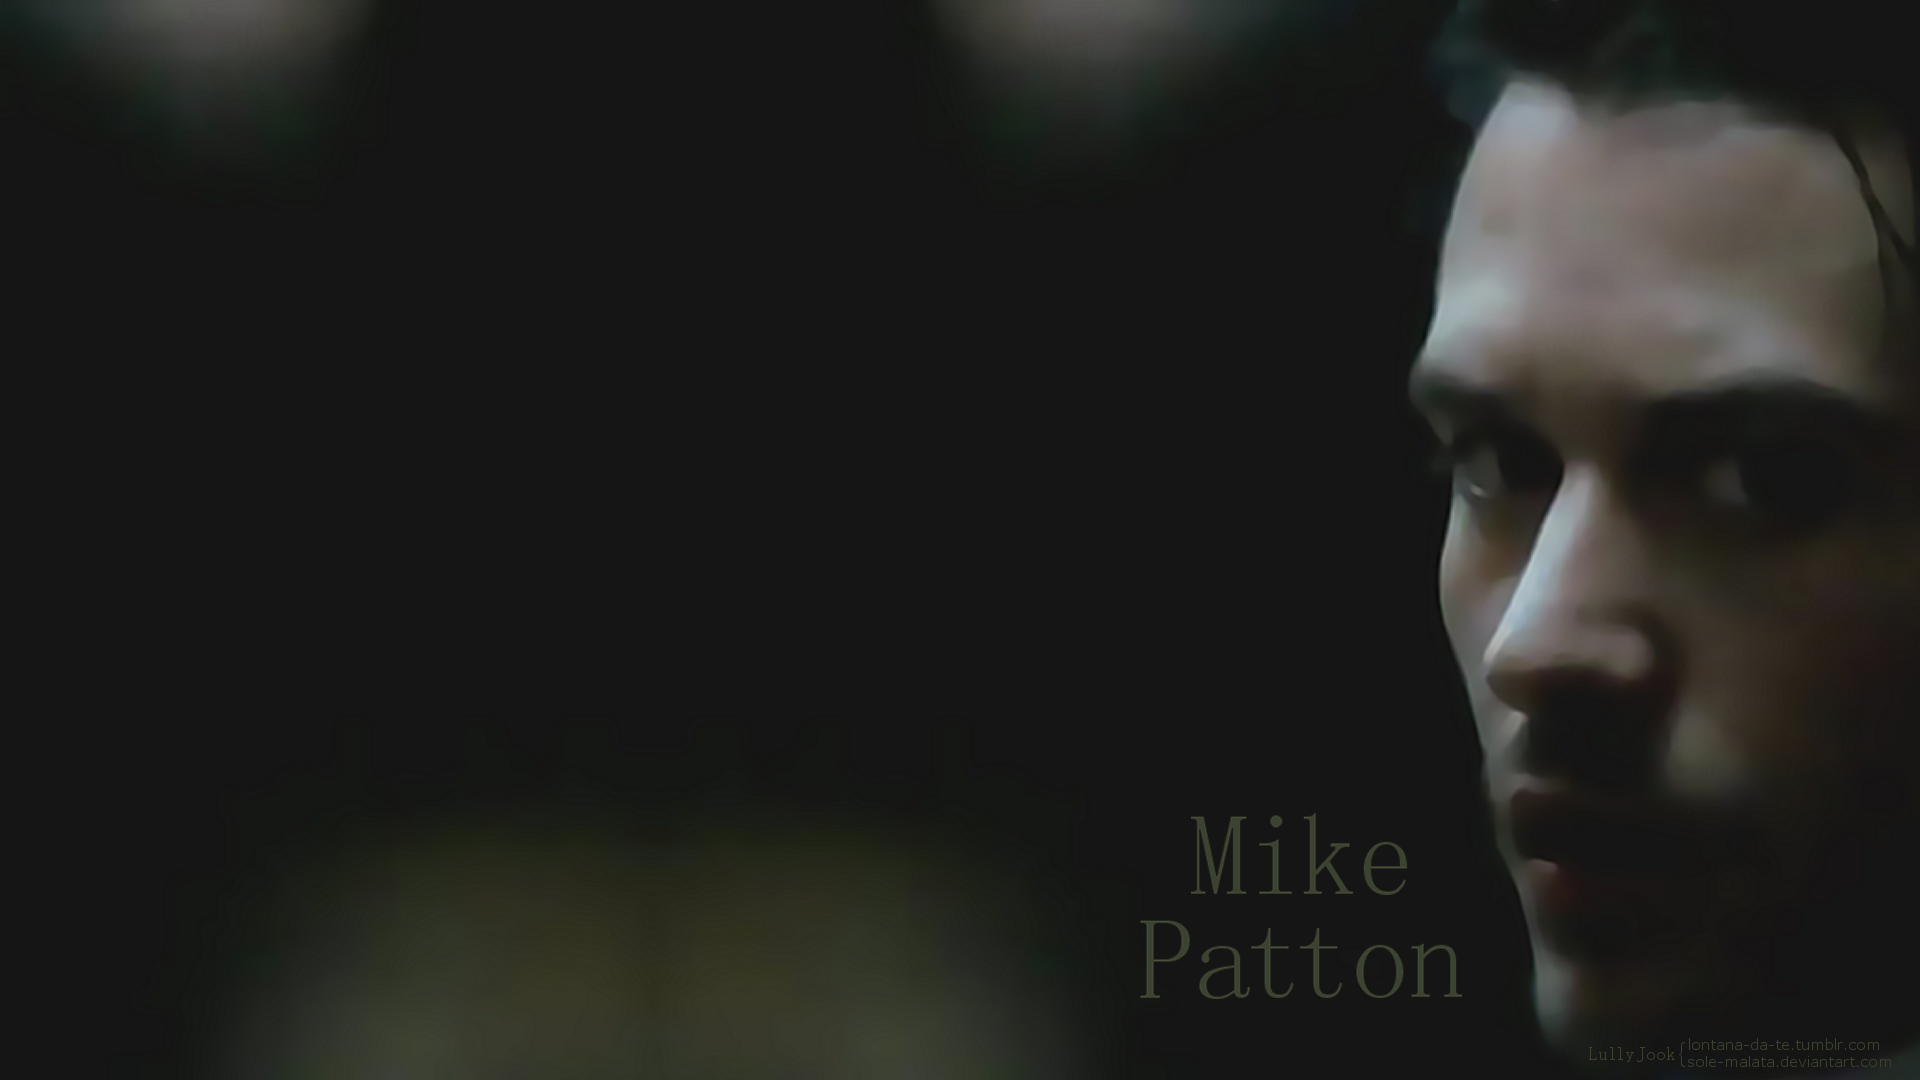 Mike Patton Wallpaper by sole-malata